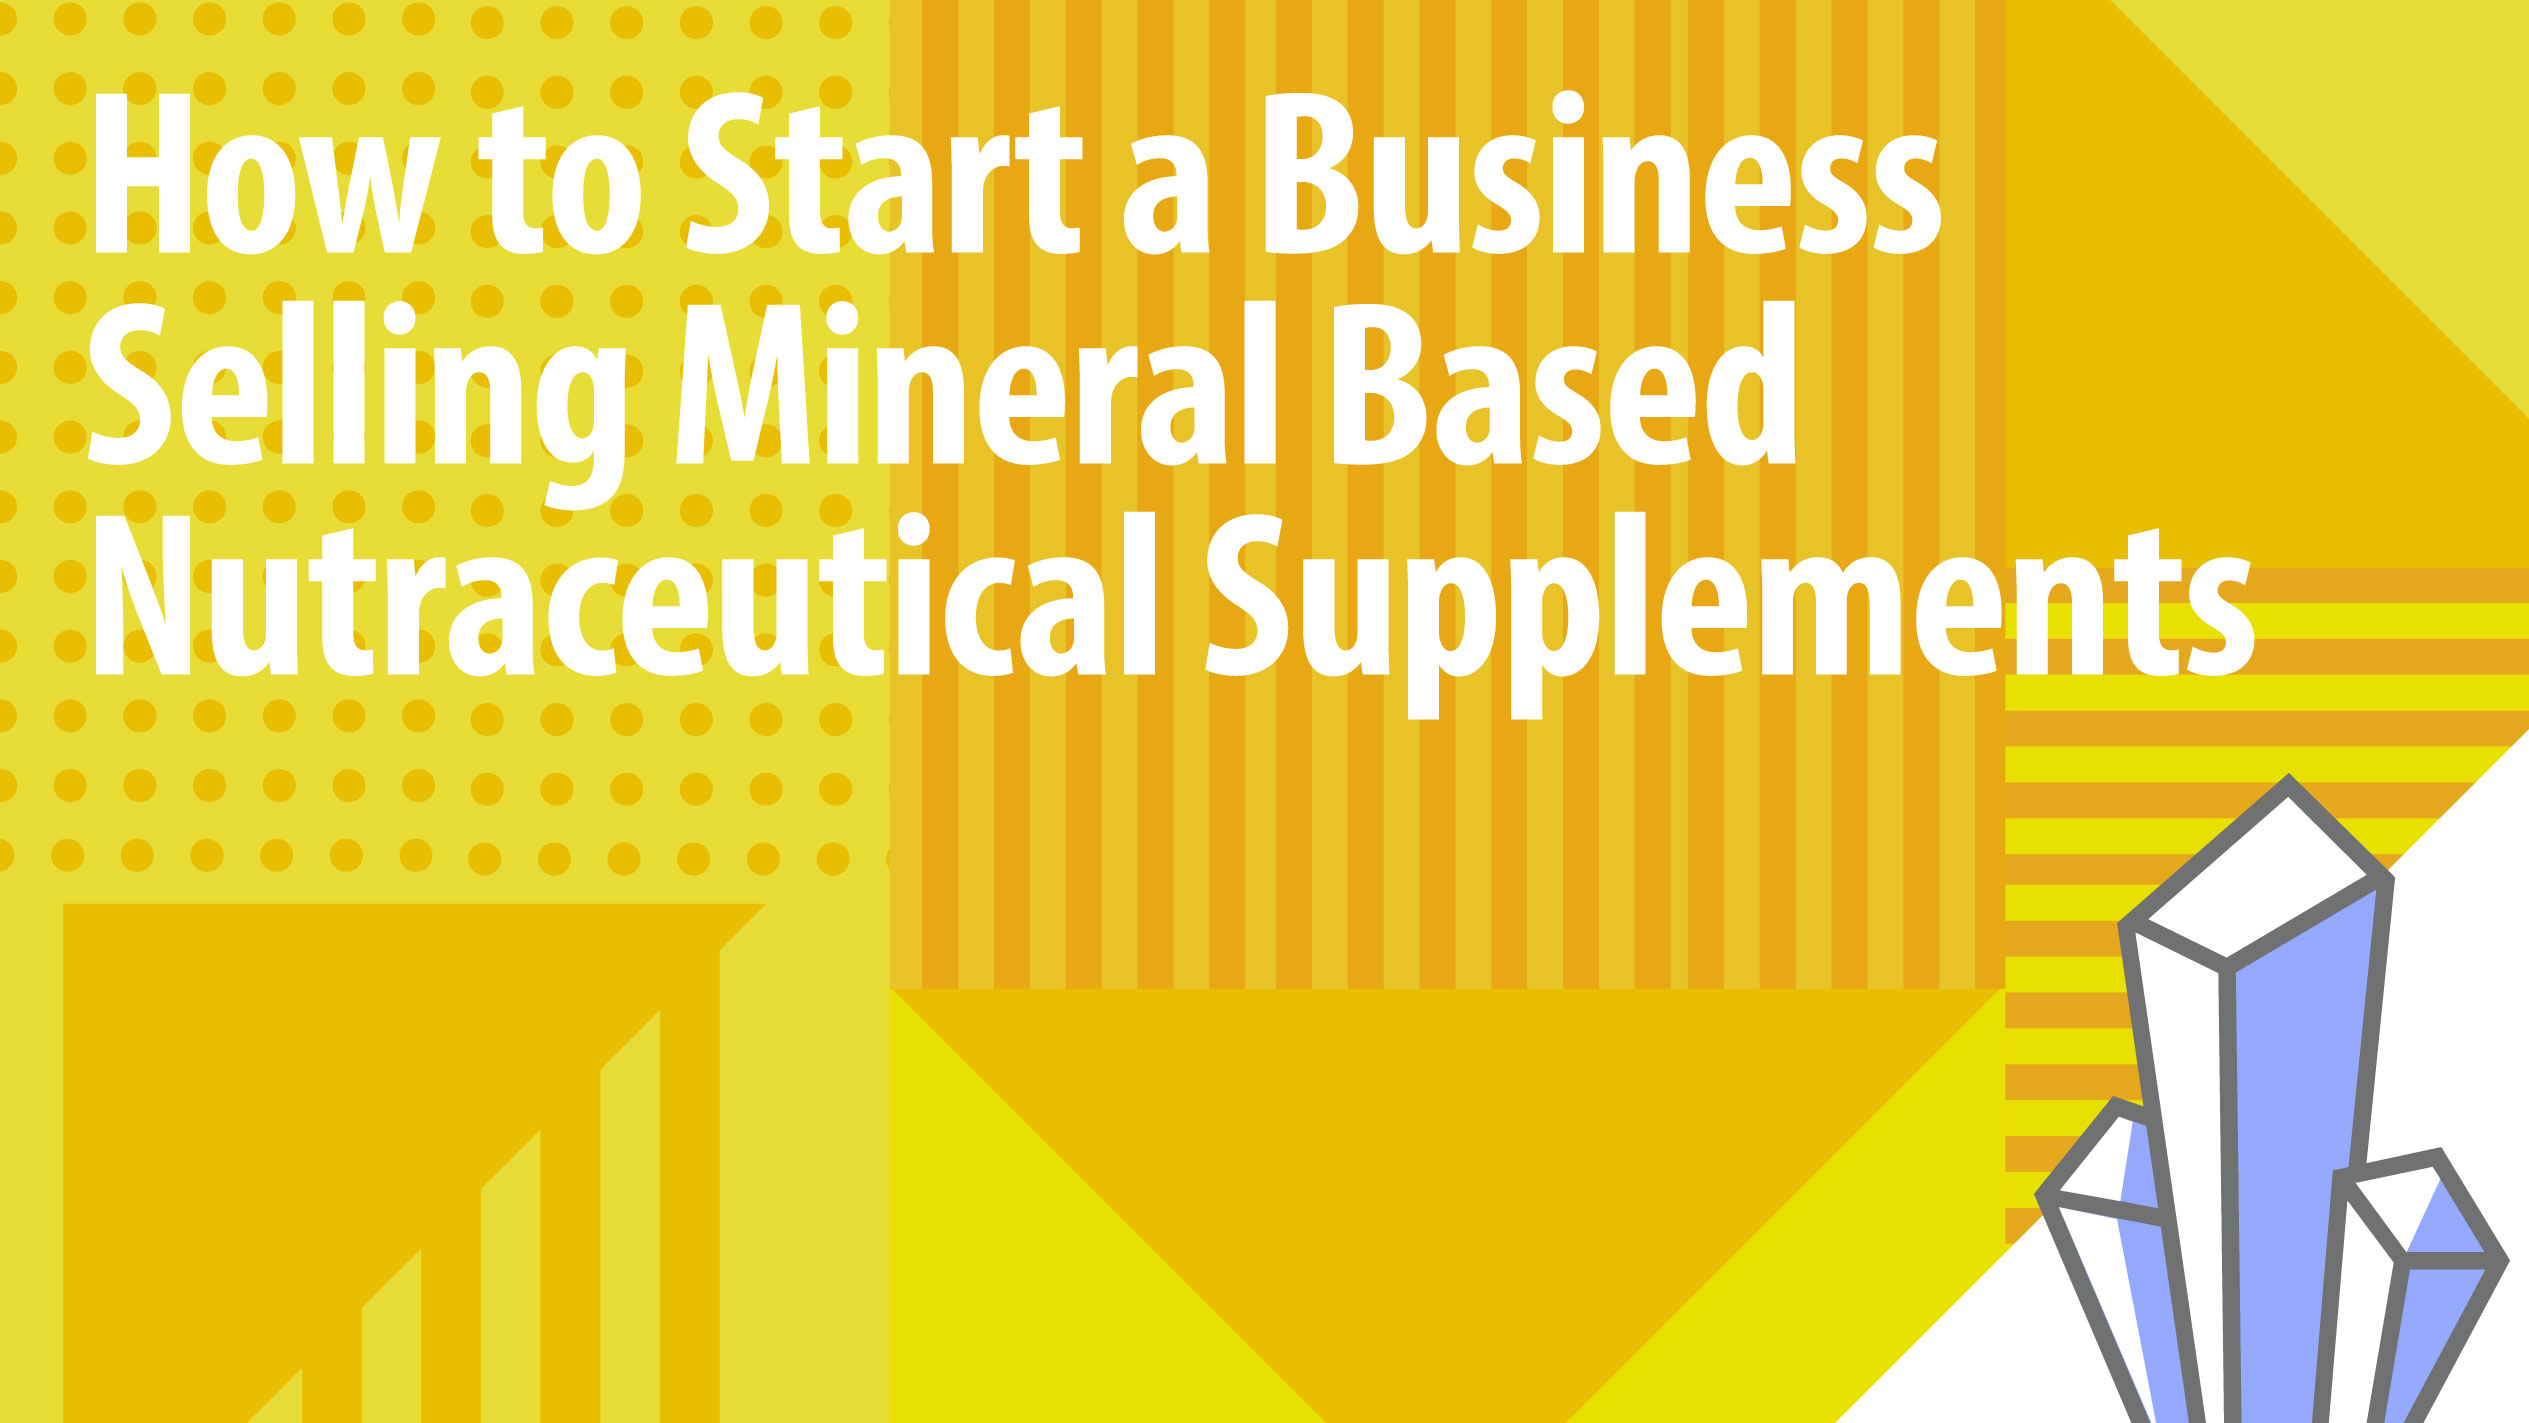 How to Start a Business Selling Mineral Based Nutra Supplements